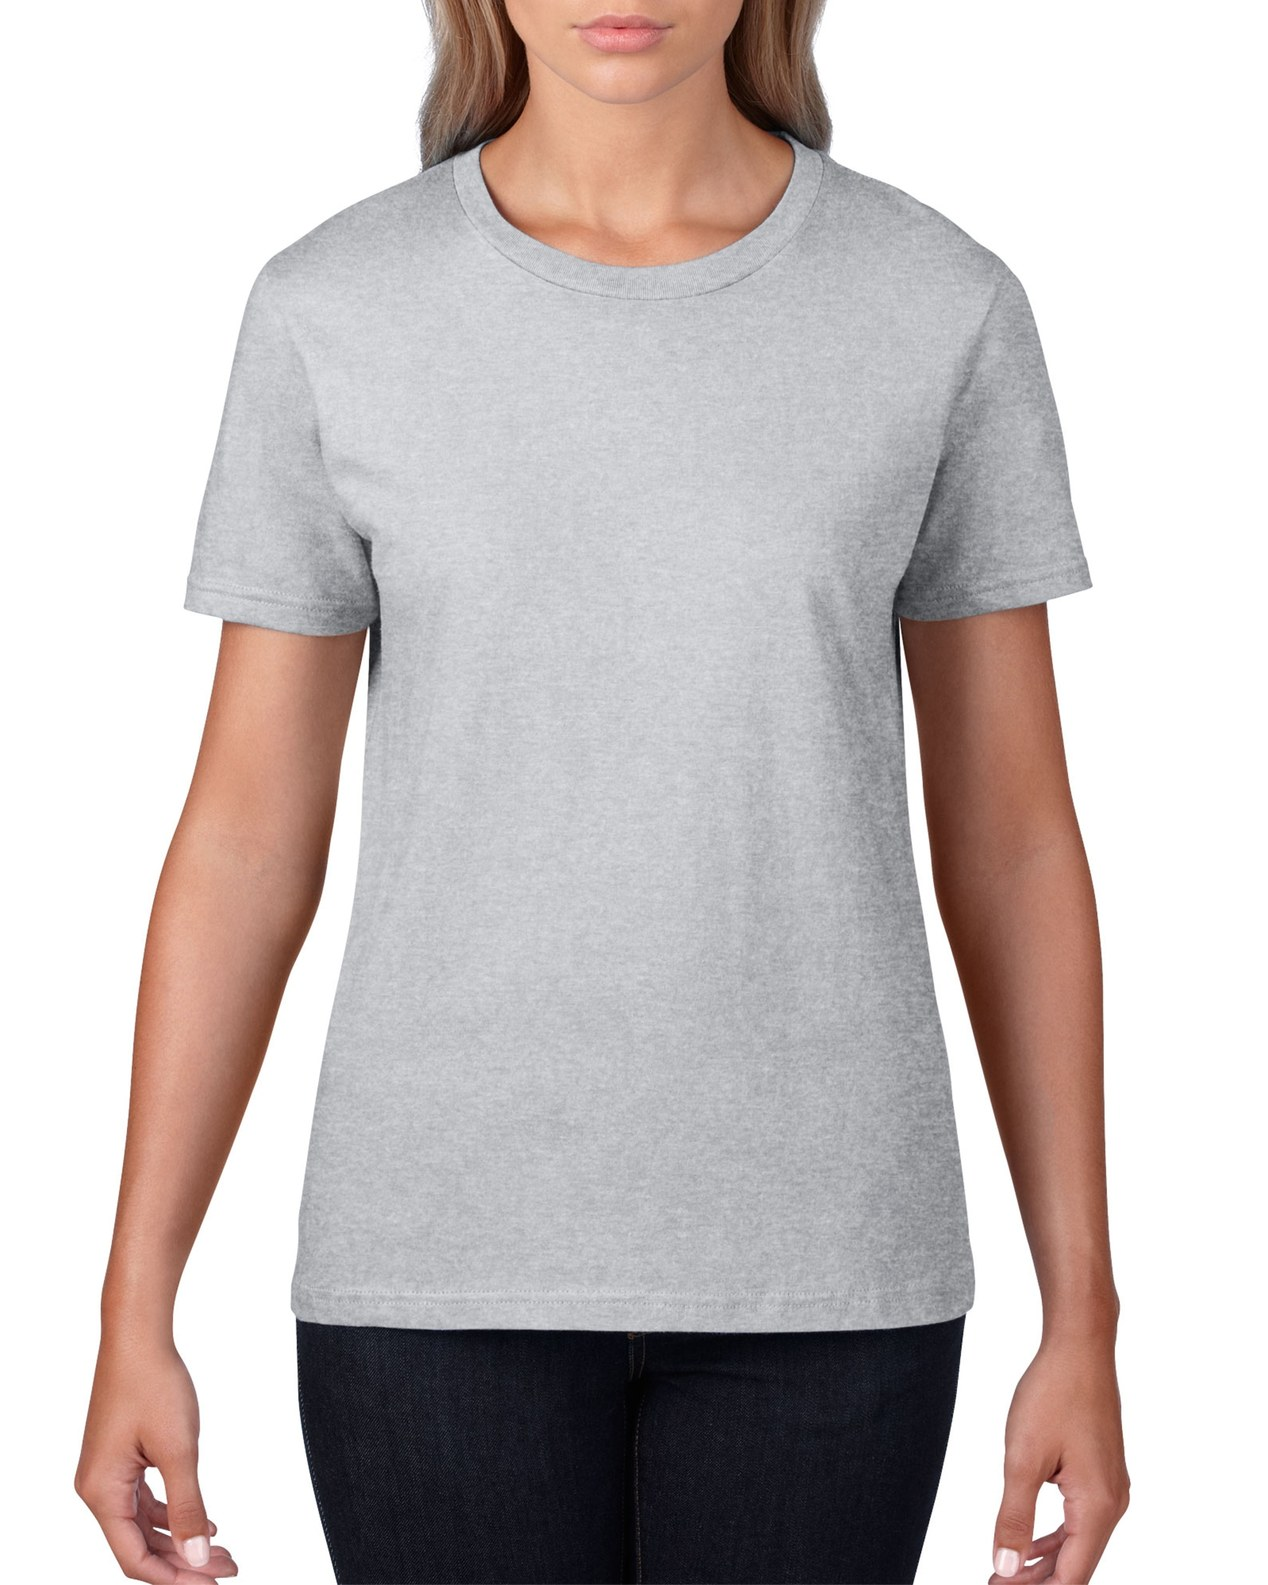 Gildan Premium Cotton Ladies Tee 4100L - Colours